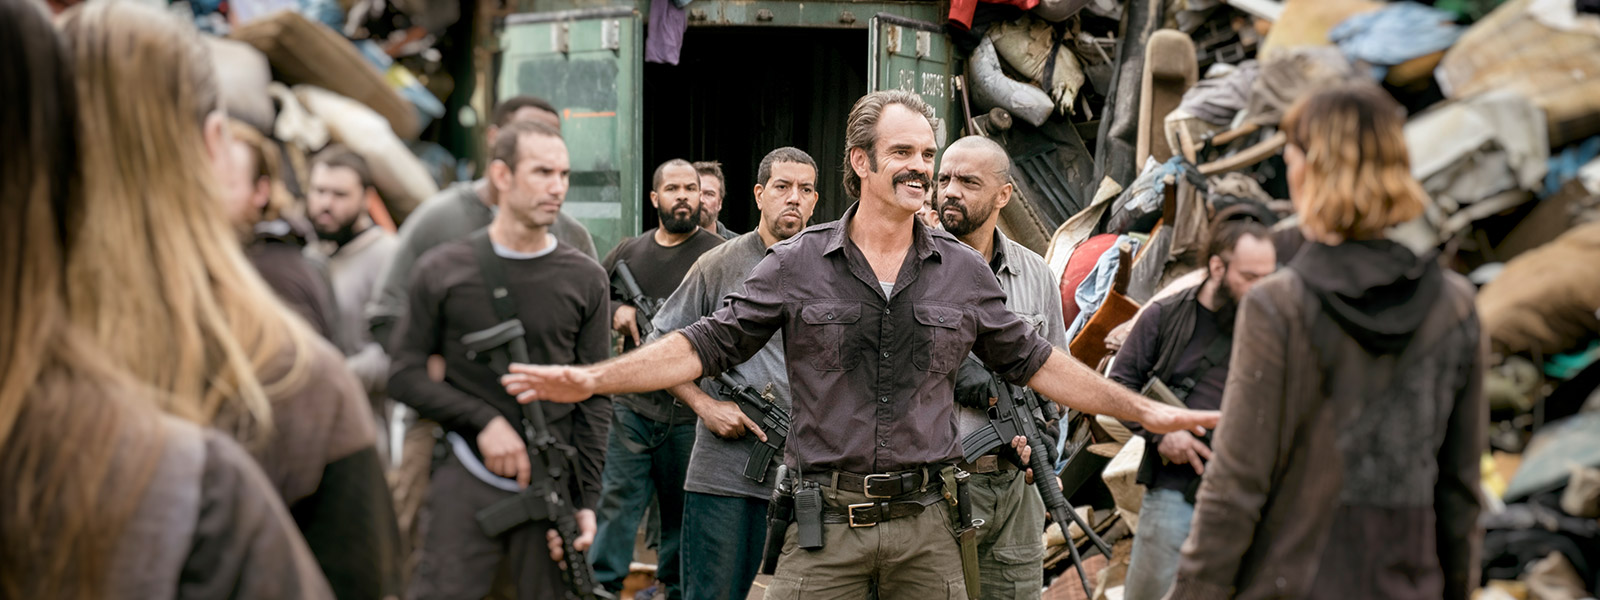 the-walking-dead-episode-810-simon-ogg-jadis-mcintosh-post-800×600